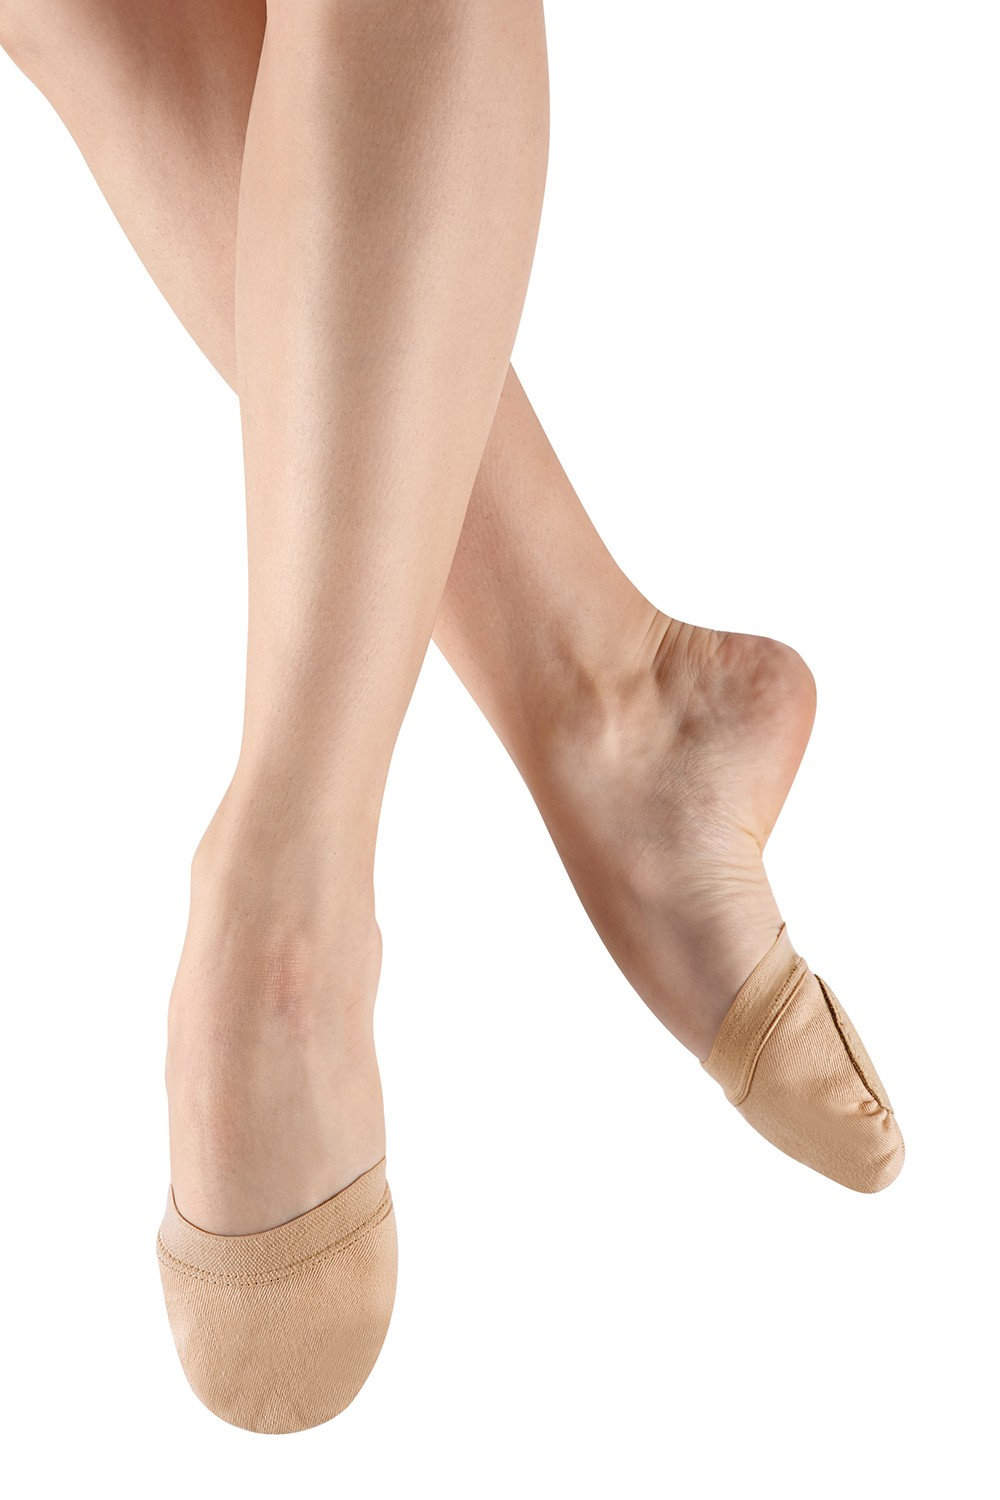 Spin Women's Contemporary Dance Shoes